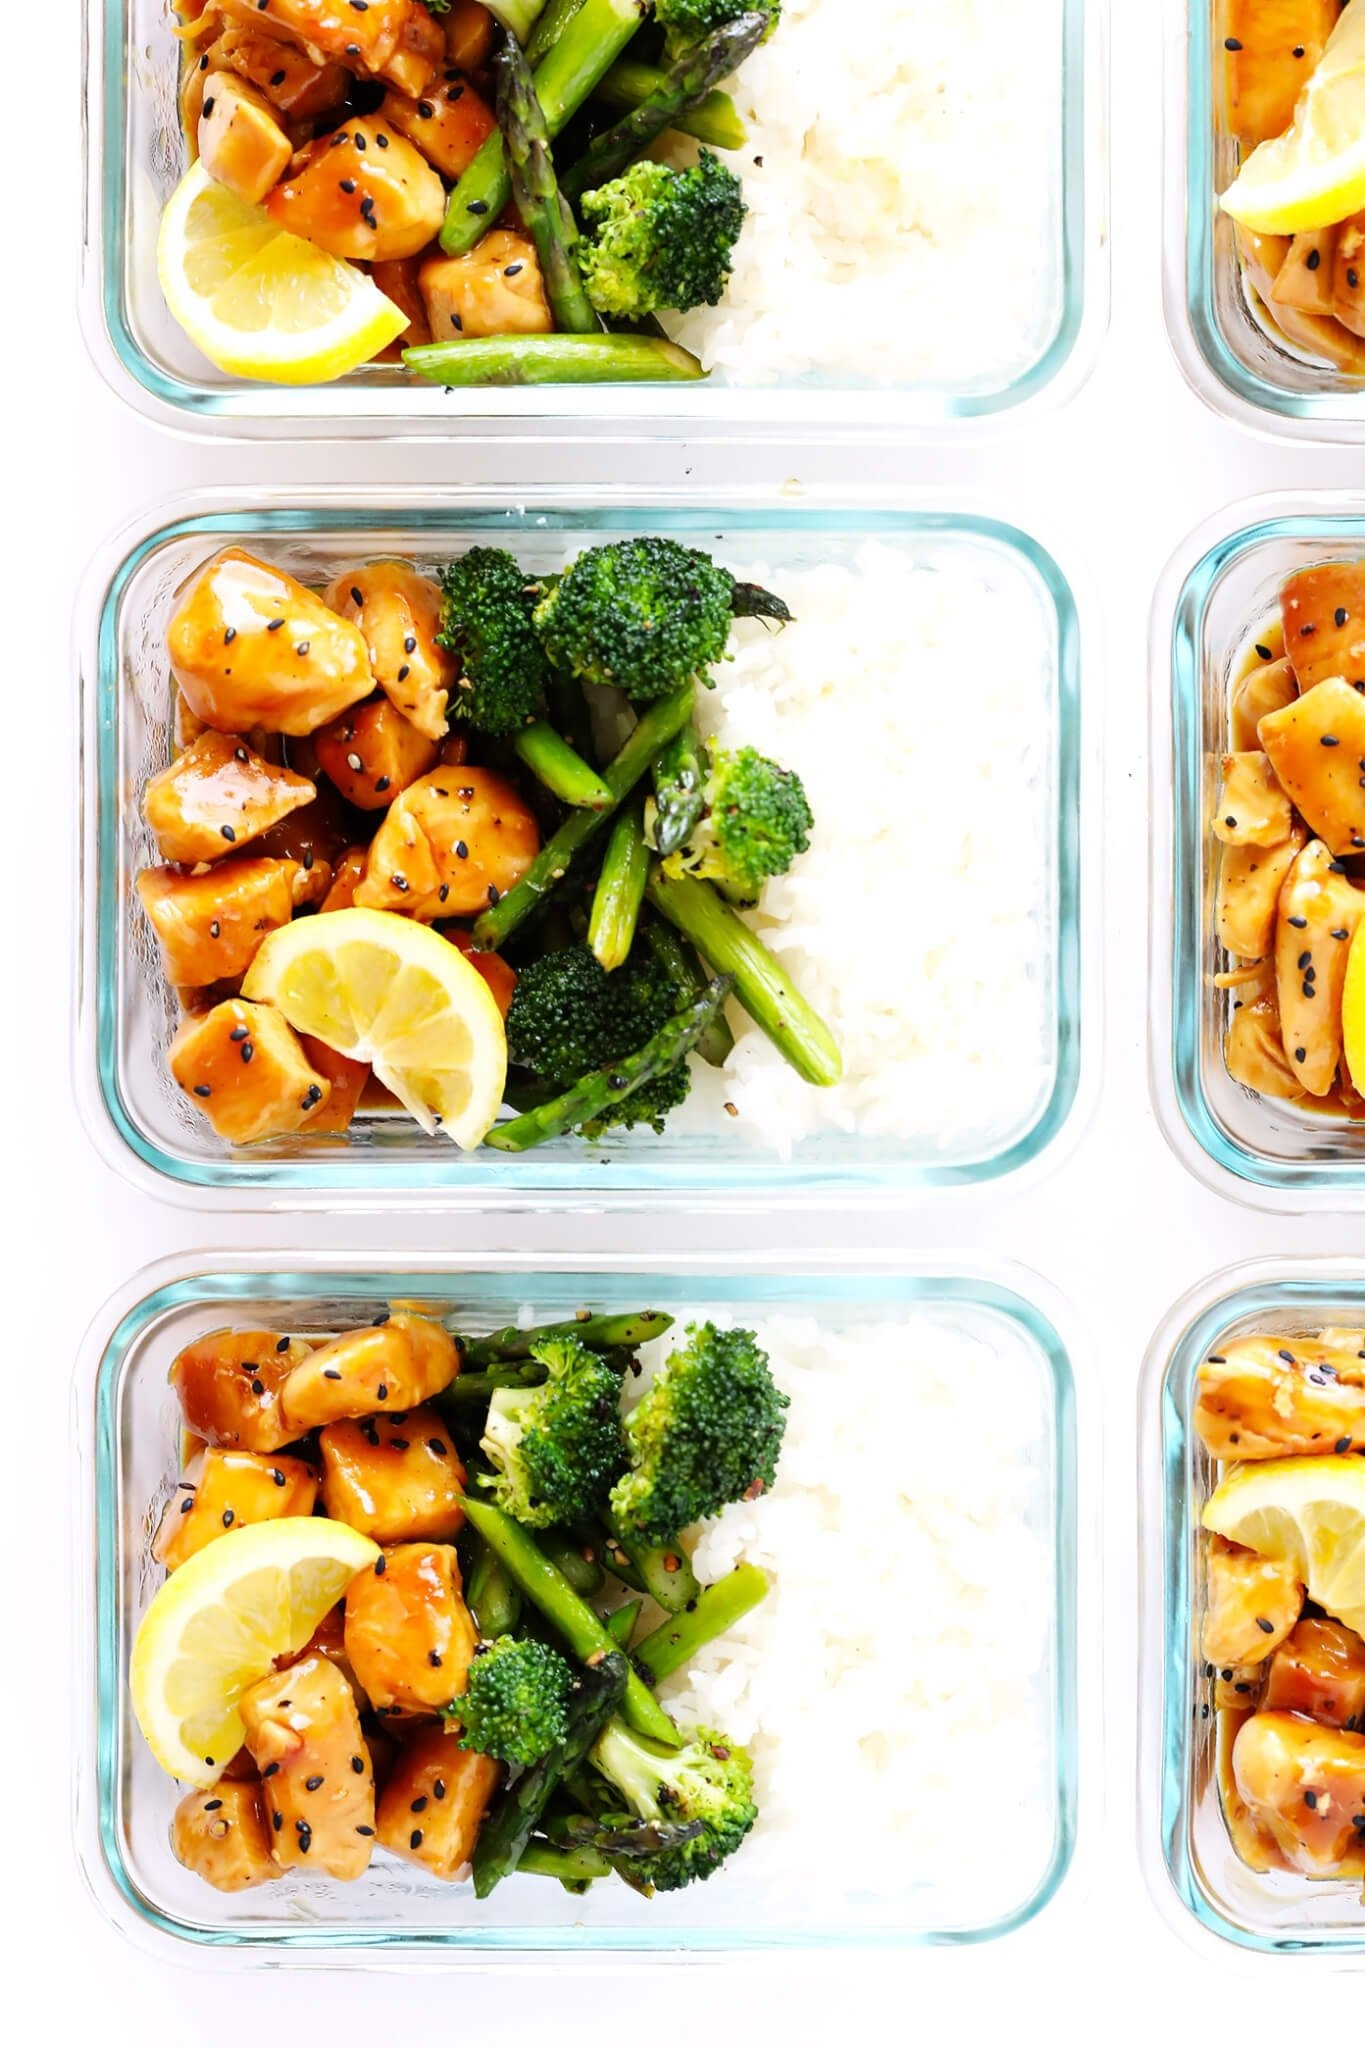 10 Amazing Healthy Lunch And Dinner Ideas honey lemon chicken bowls meal prep gimme some oven